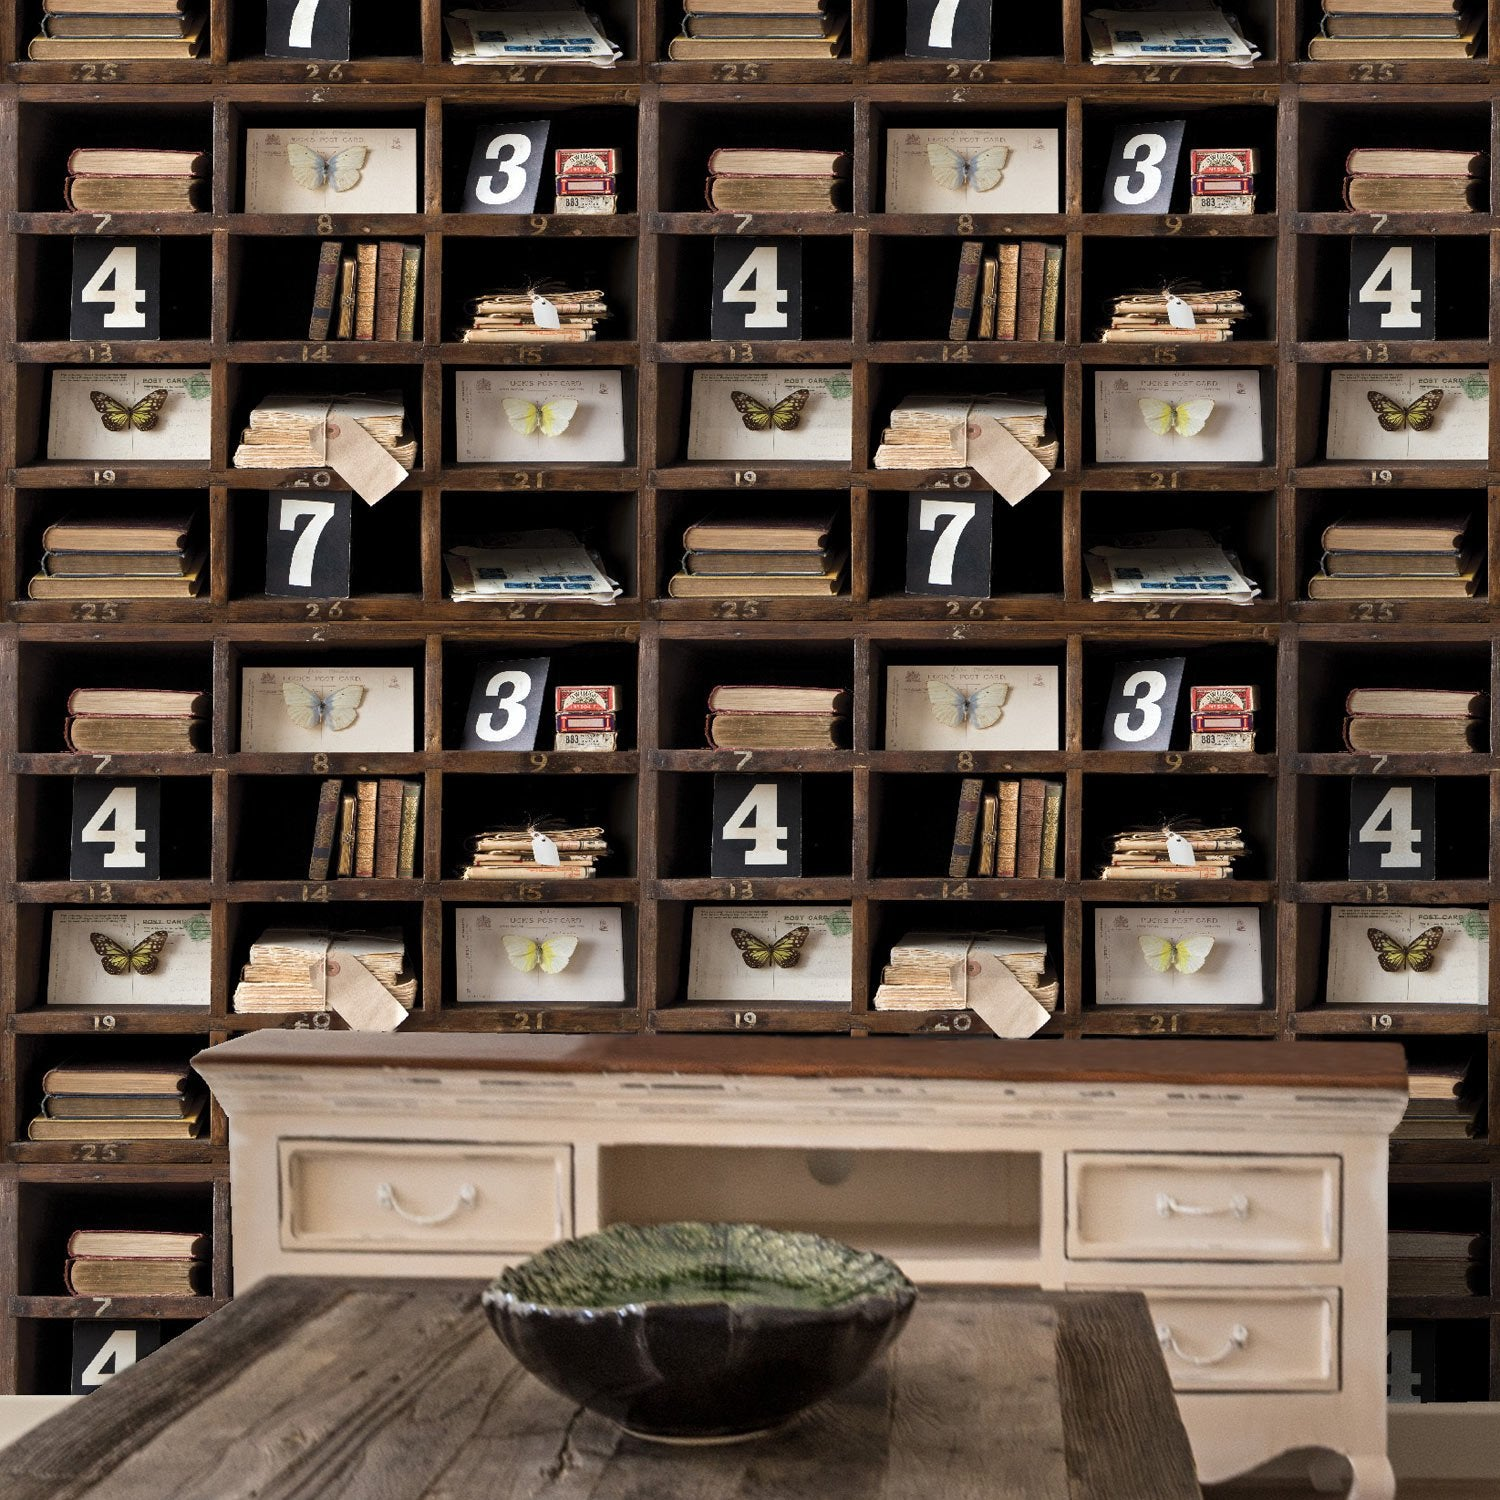 papier peint intiss biblio curieuse multicouleur leroy merlin. Black Bedroom Furniture Sets. Home Design Ideas